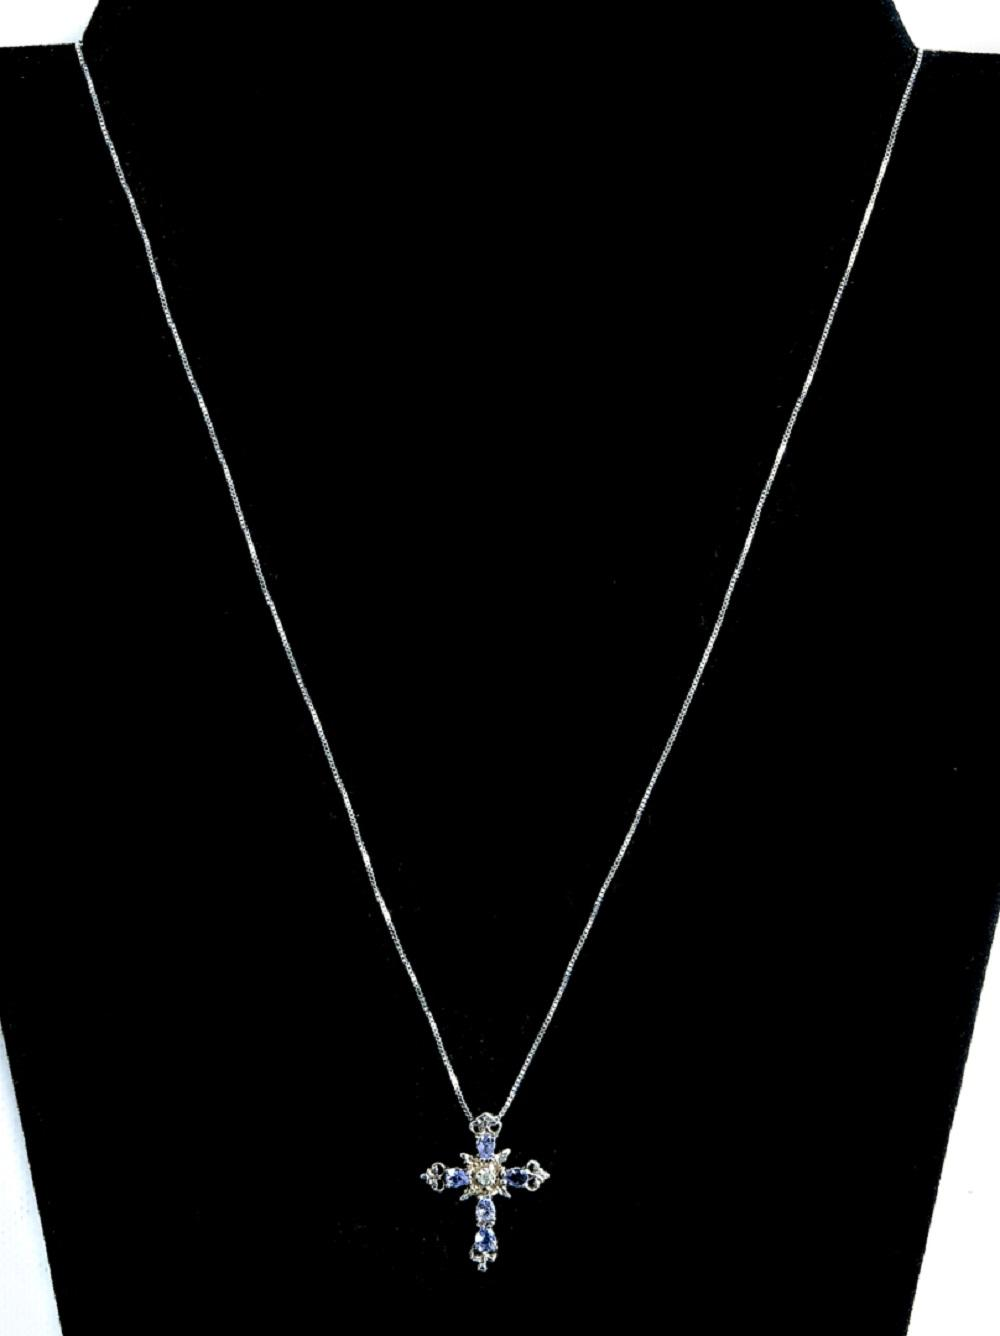 10k WG Diamond & Tanzanite Cross Necklace